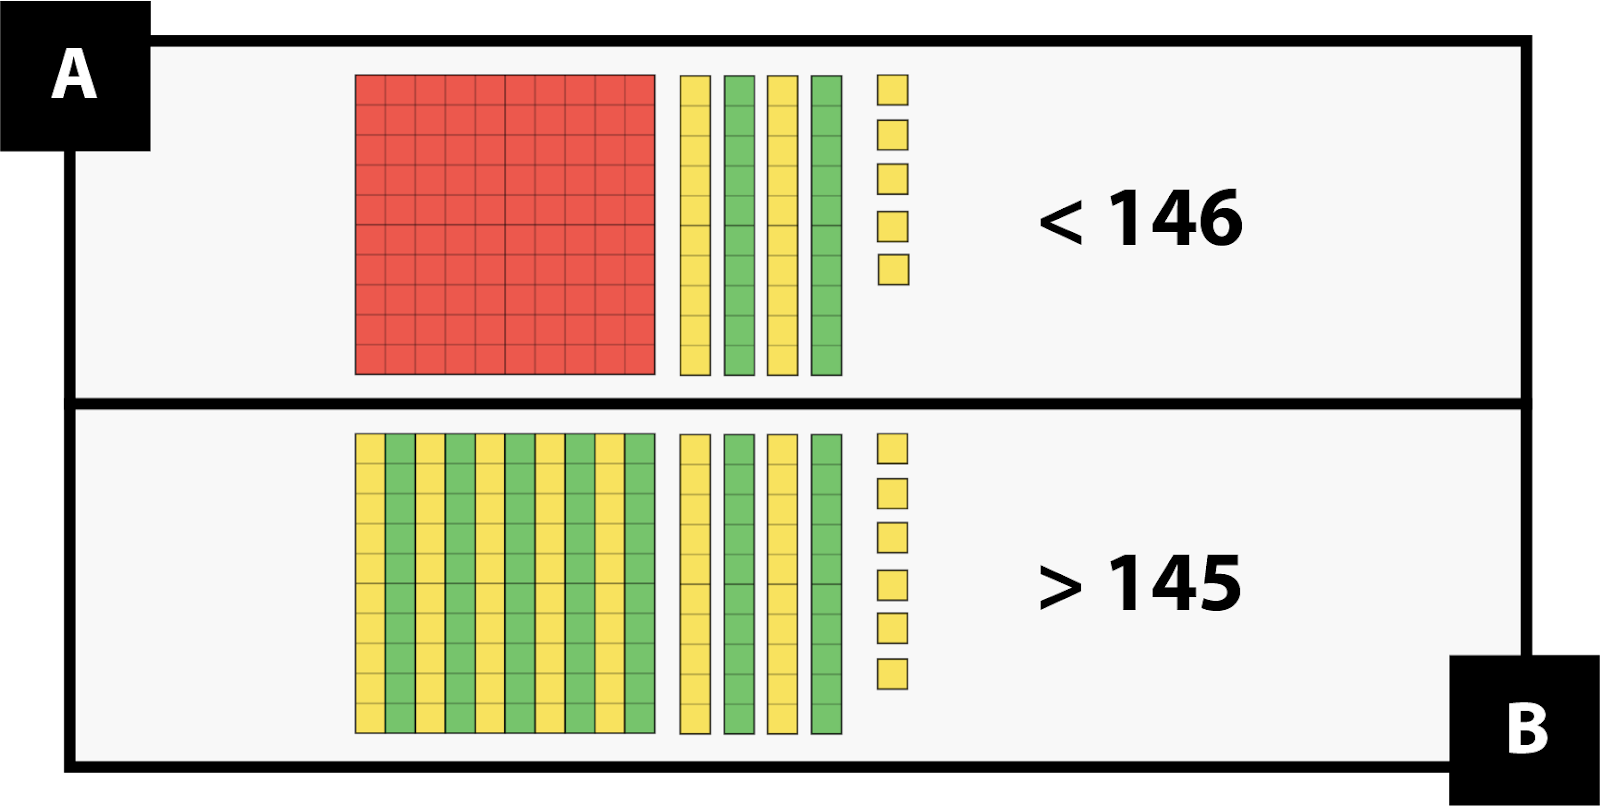 A. shows 1 mat, 4 ten strips, and 5 units (in base ten pieces) is less than 146. B. shows 14 ten-strips and 6 units (in base ten pieces) is greater than 145.